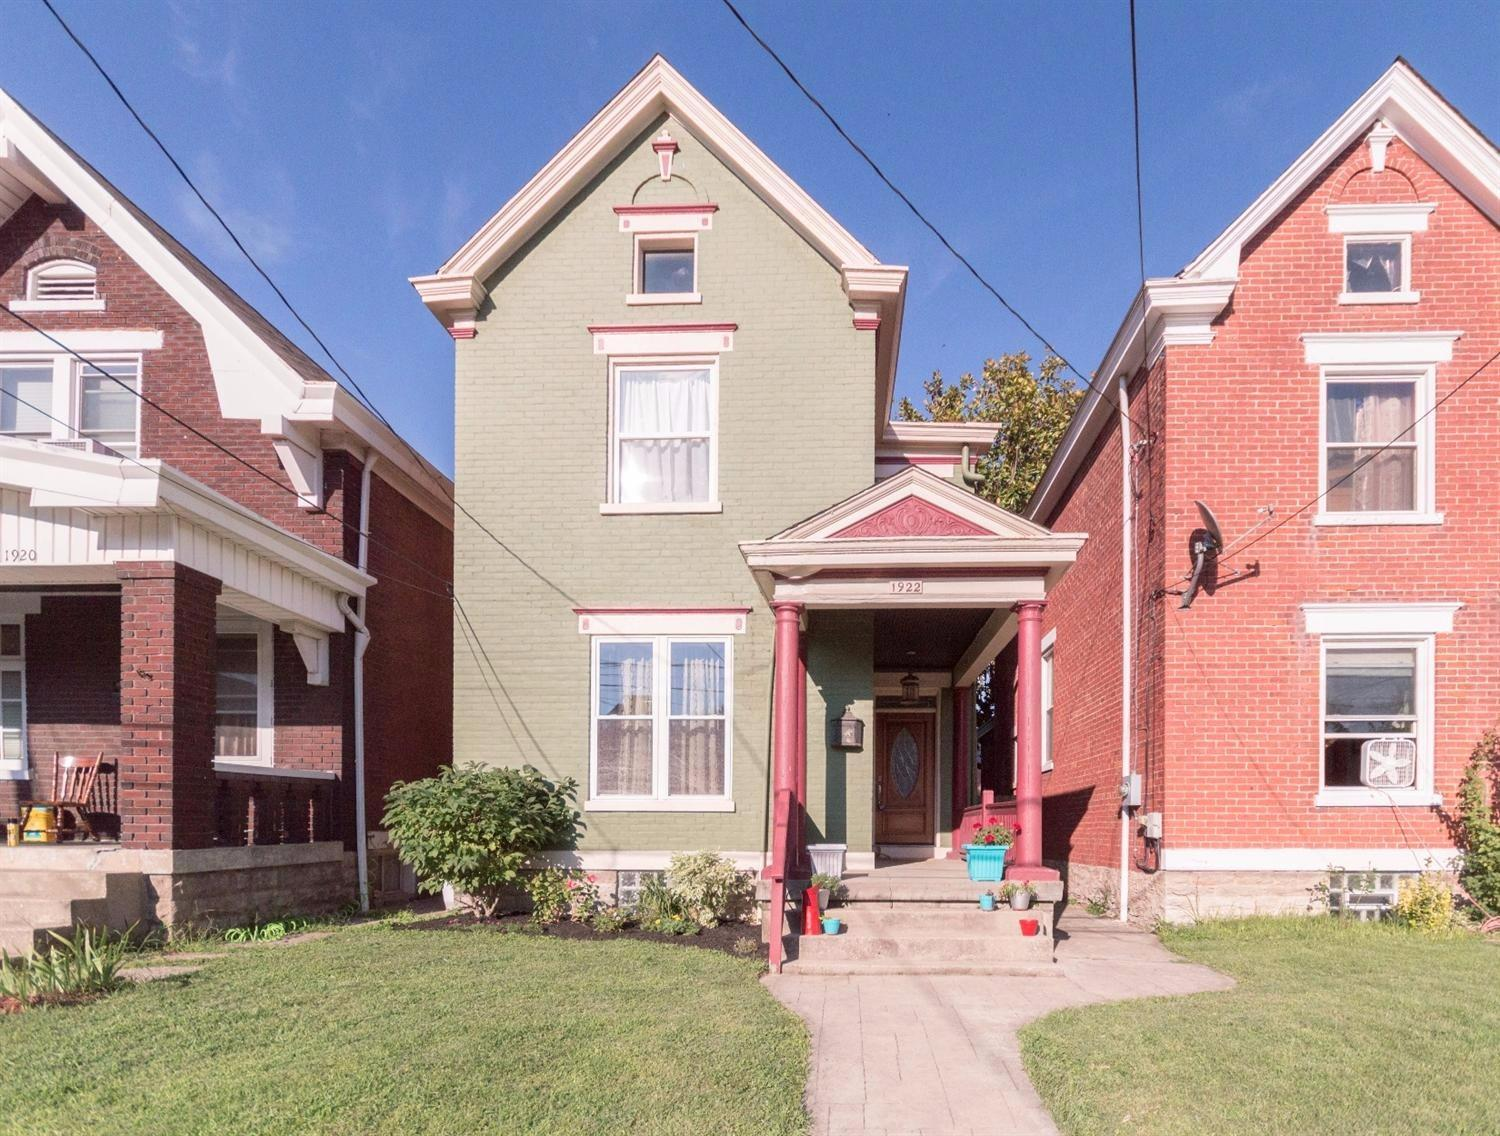 Photo 1 for 1922 Garrard St Covington, KY 41014